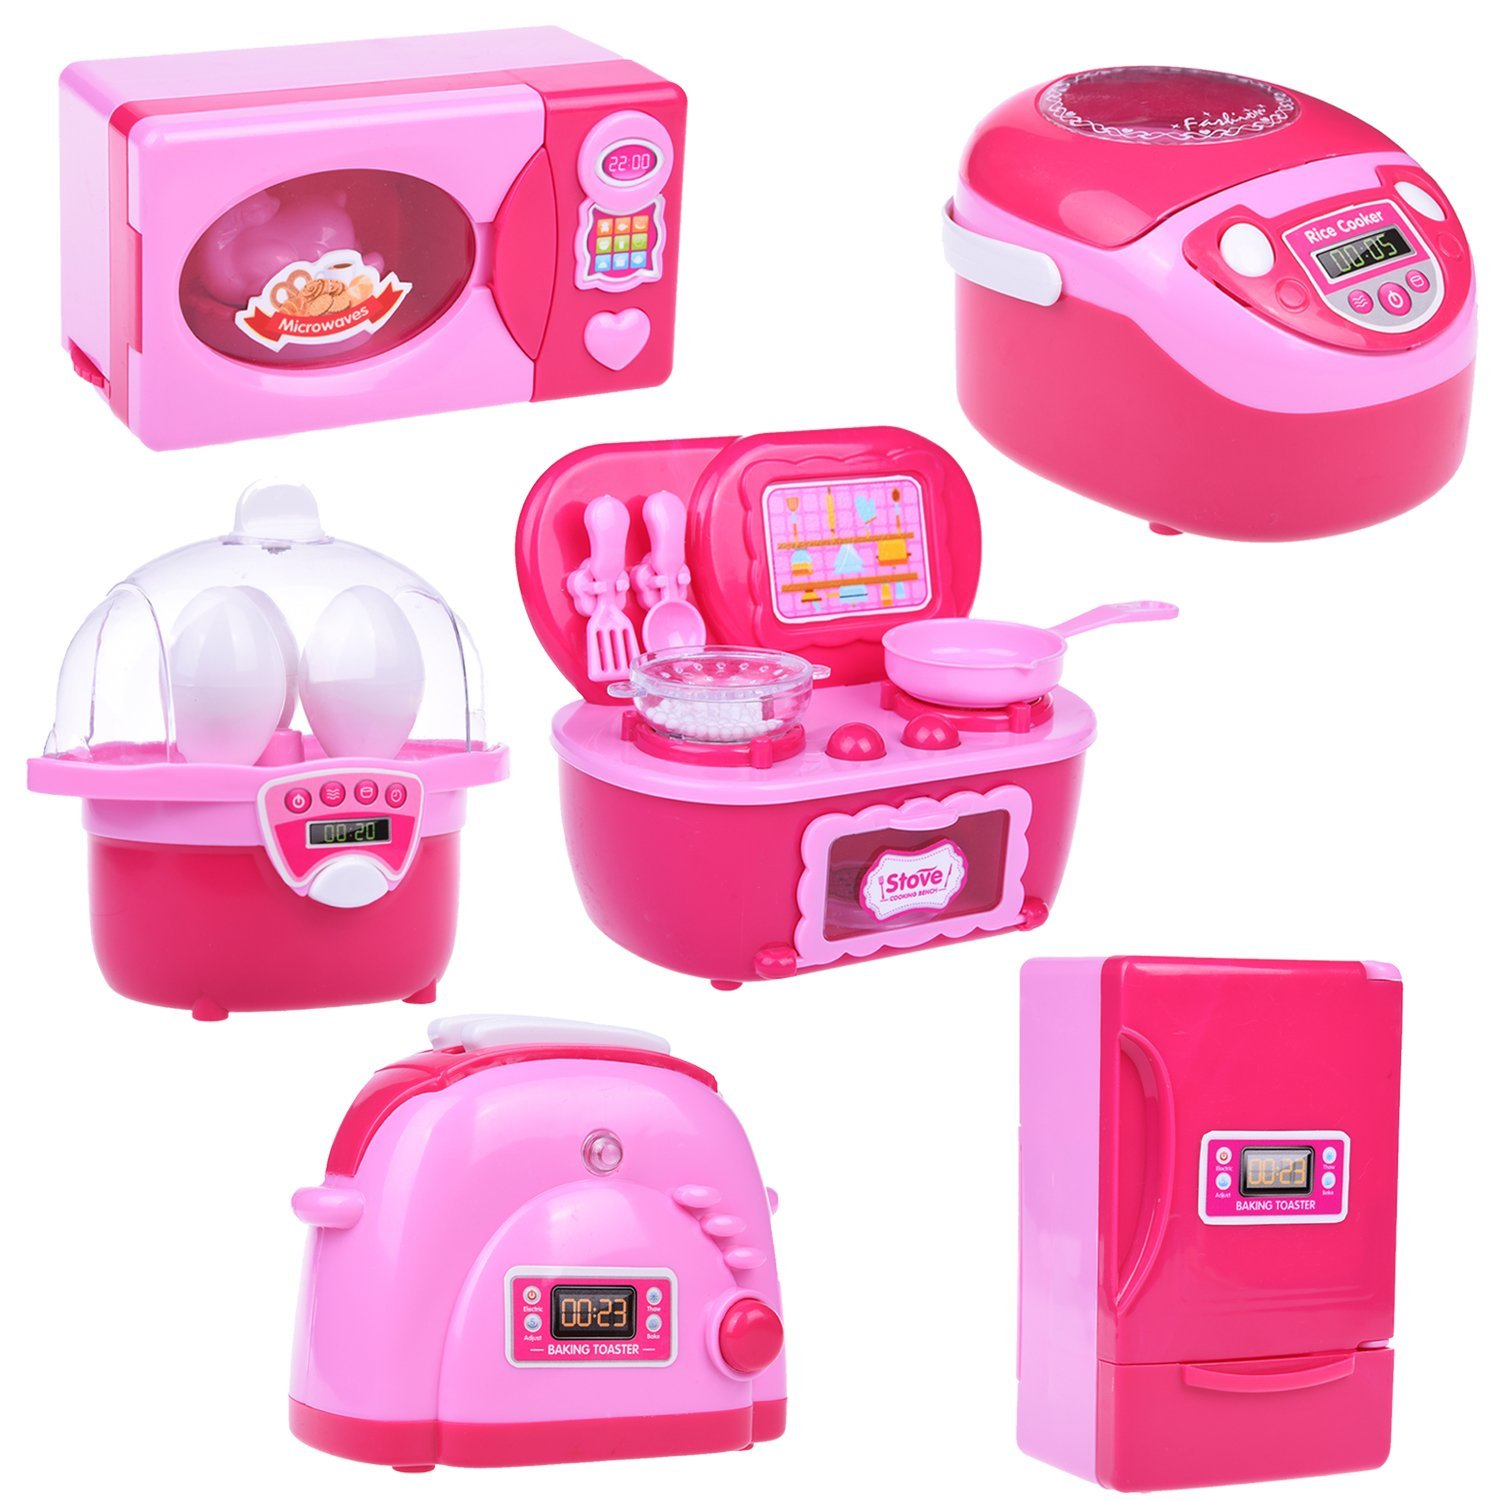 Mini Kitchen Play Set Home Appliances Refrigerator Stove Oven Microwave Toaster Steam Egg Timer Set with Batteries 6 PCs F-33